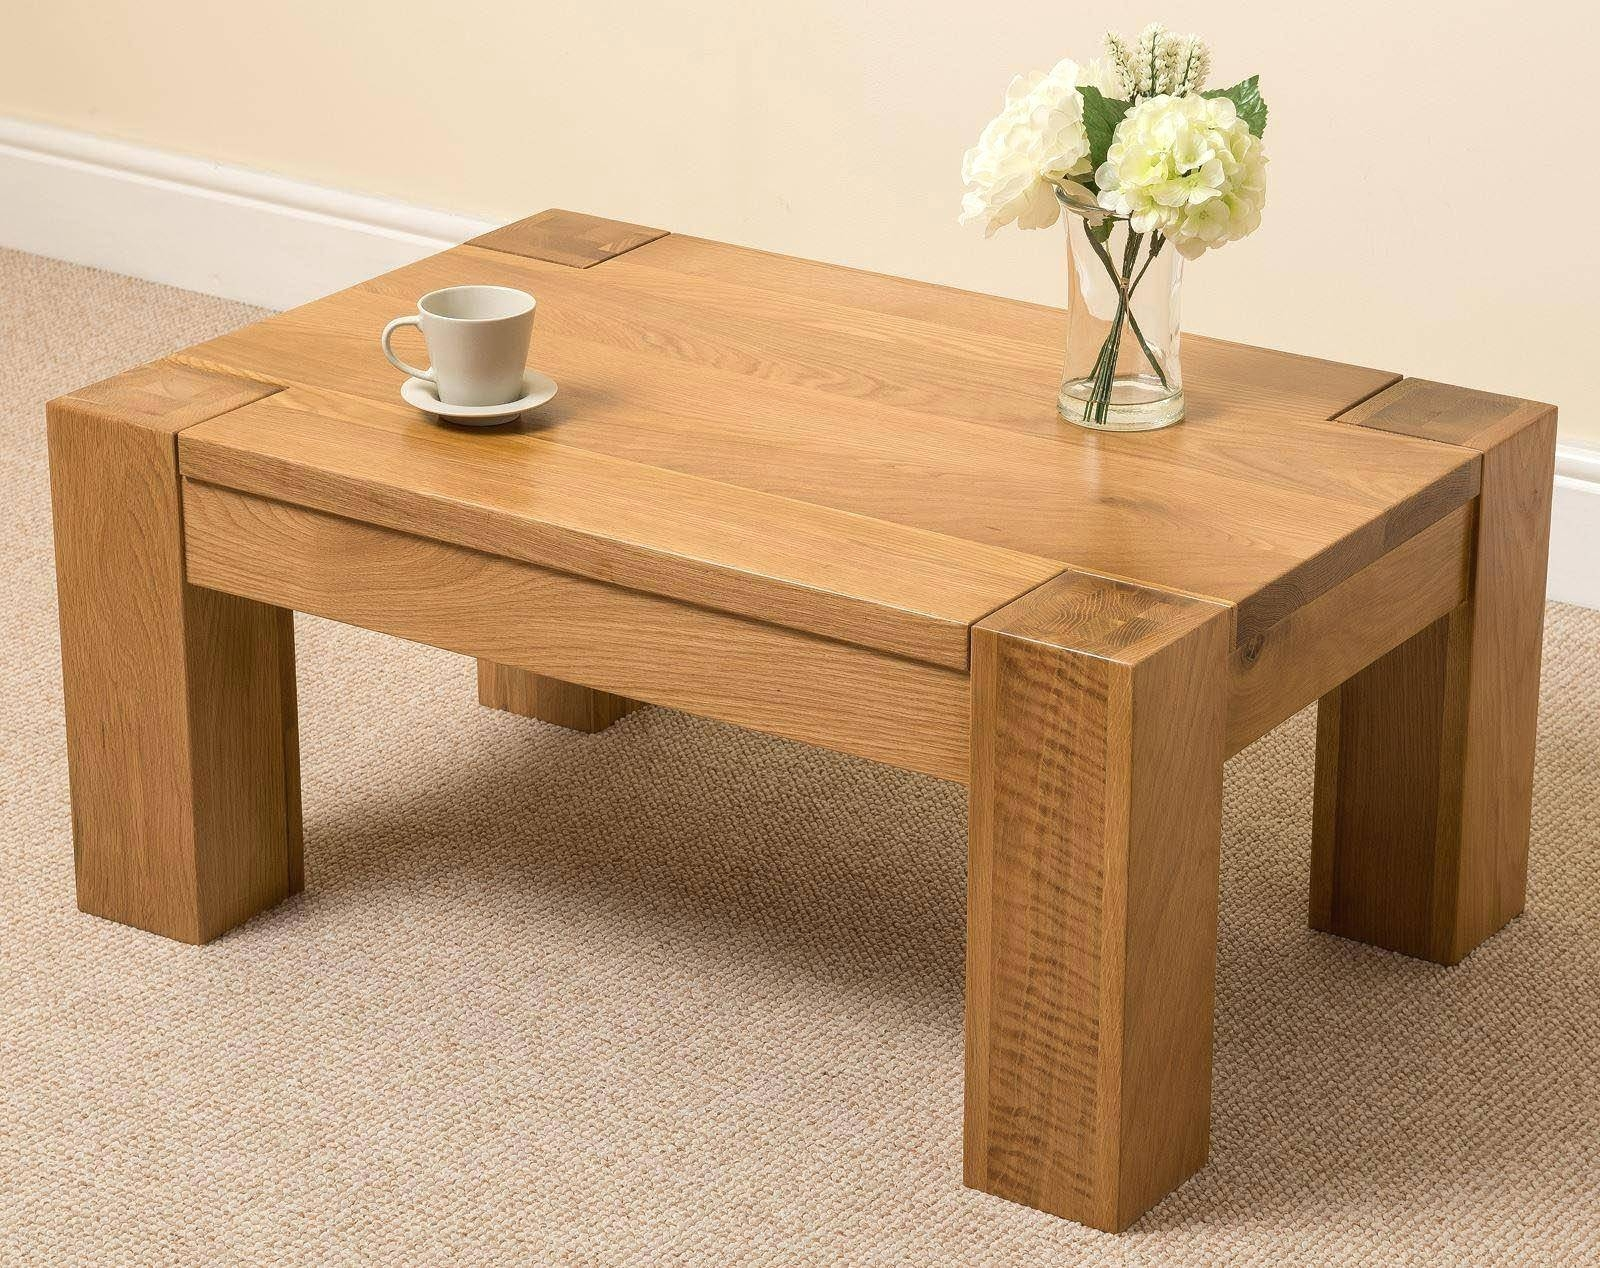 Aruba Solid Pine Coffee Table With Drawer | Coffee Tables Decoration inside Square Pine Coffee Tables (Image 3 of 30)